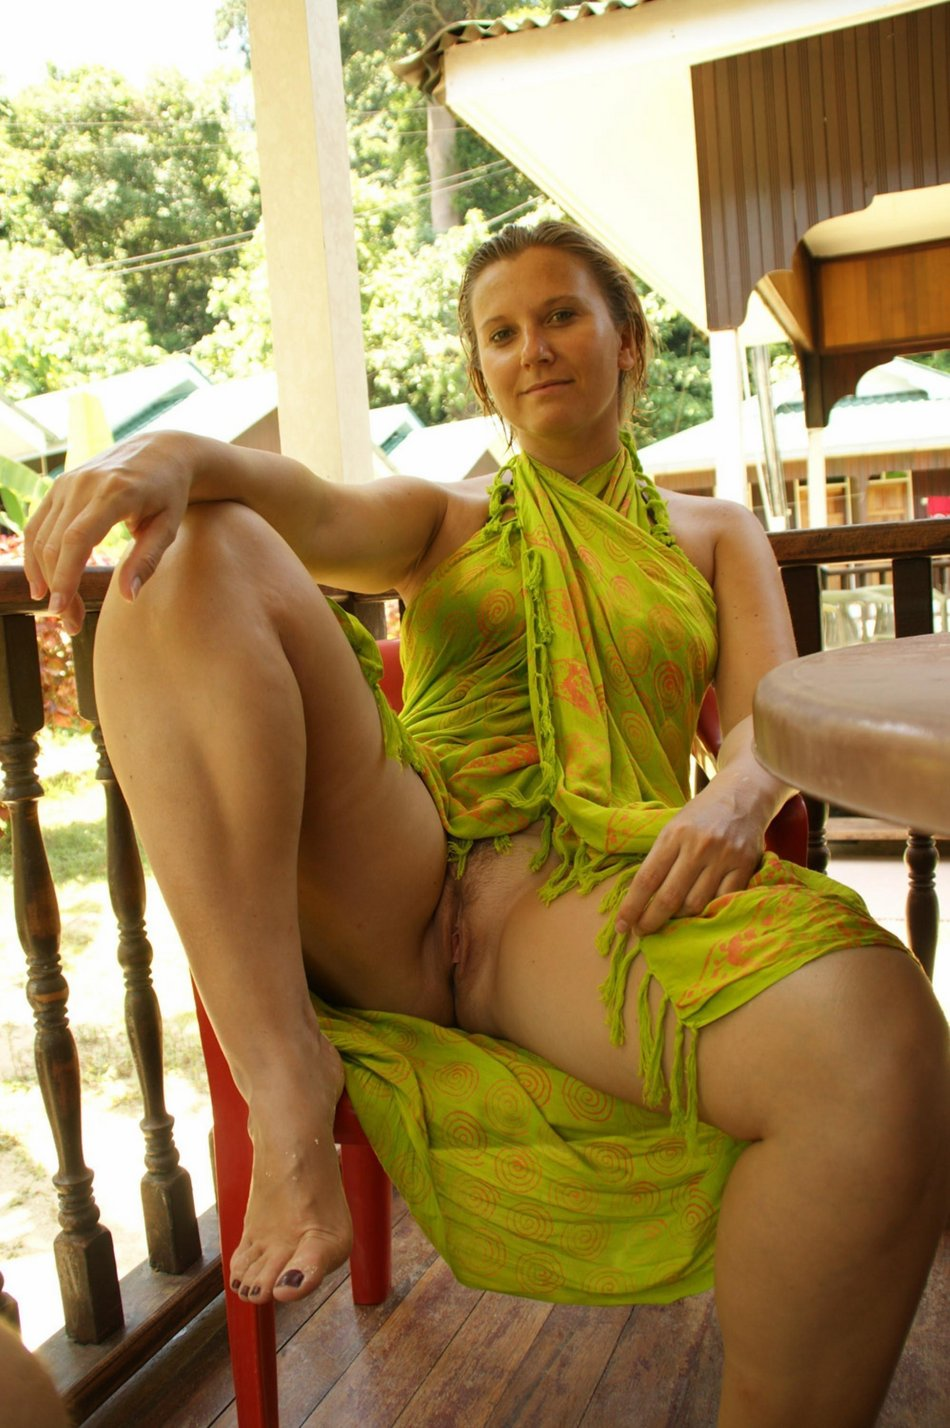 Event mature wife public pussy flash theme interesting